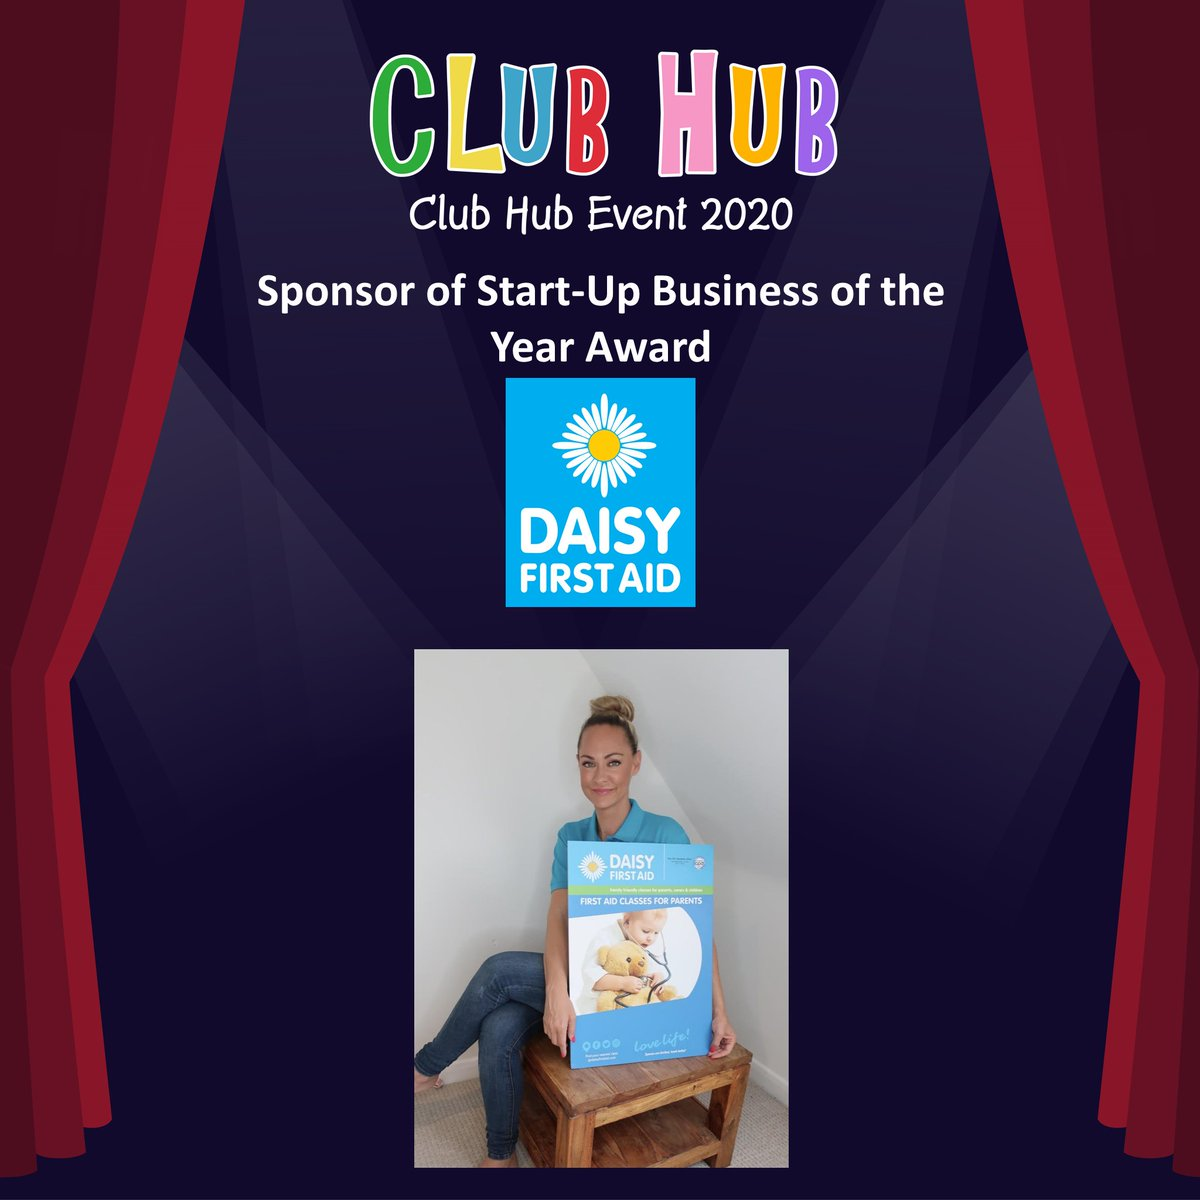 Congratulations to these businesses who have been nominated for Start-Up Business of the Year Sponsored by @daisyfirstaid   https://clubhubuk.co.uk/club-hub-event-2020/2020-entry-categories/…  @dfaleeds  @DSouthend @DramEdUK  @Mrs_Belshaw  @FoodiesNe  @IzwizRobotics @KidsGoneWildUK @KidslingoCrisW @LimelightPembspic.twitter.com/HPNdnJnNTb